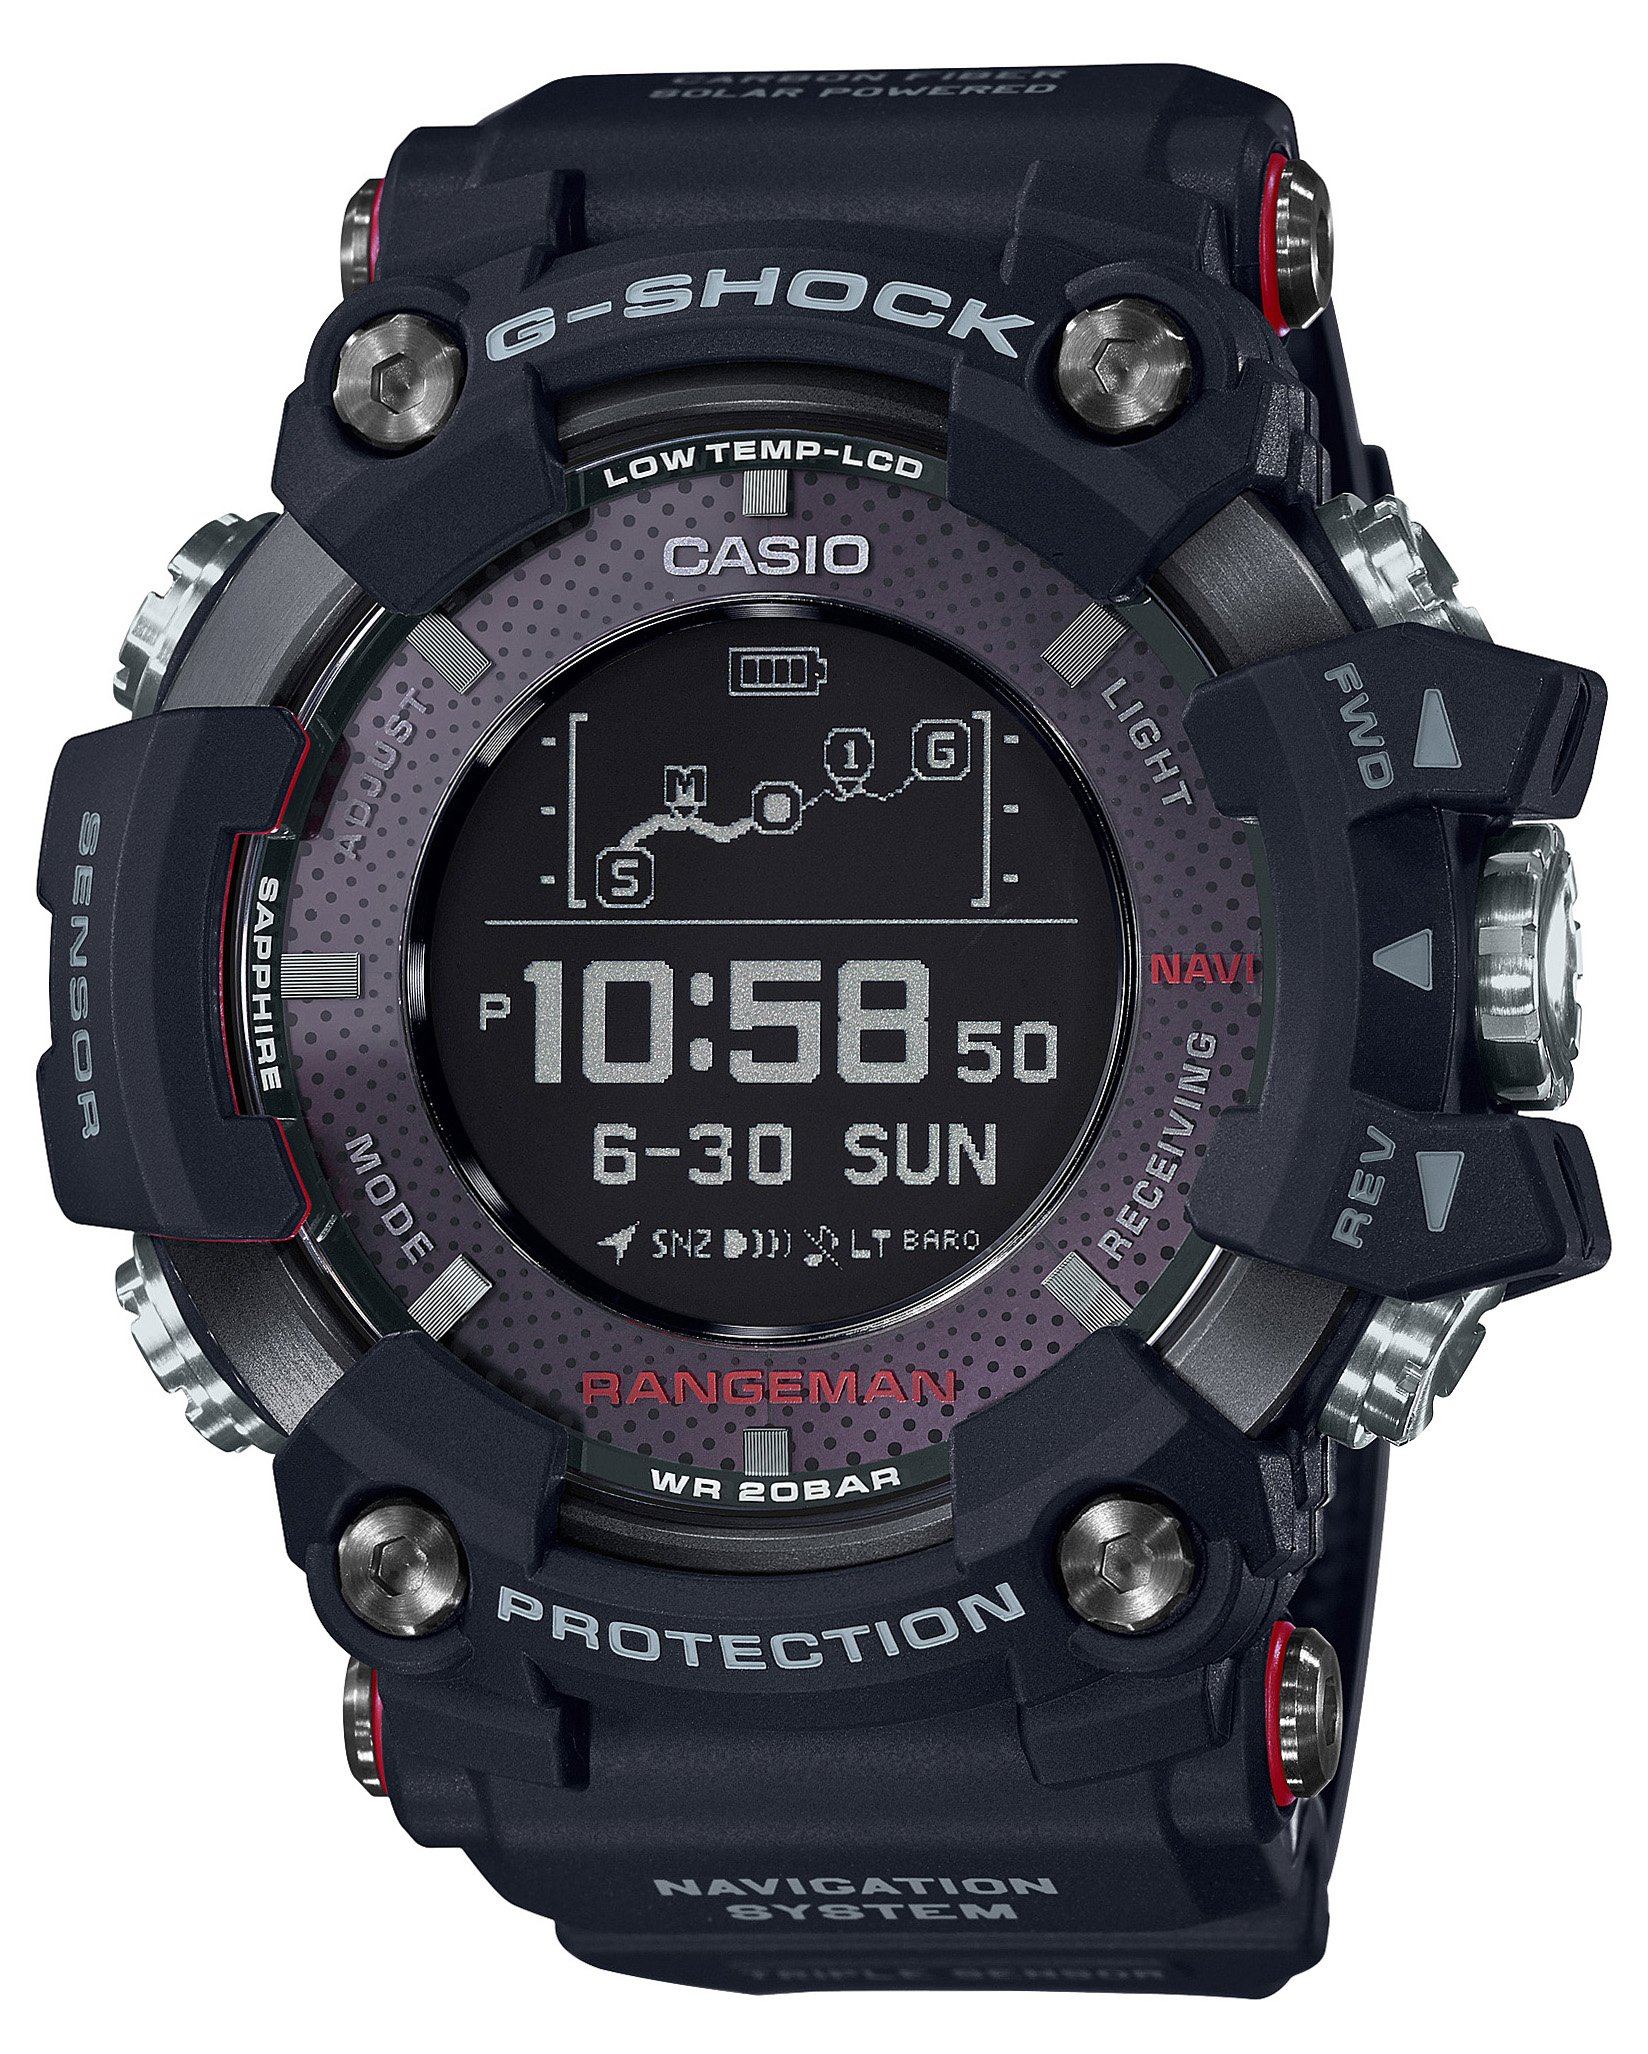 a0075fc7ba58 Casio G-SHOCK RANGEMAN Solar-Assisted - TiendaMIA.com